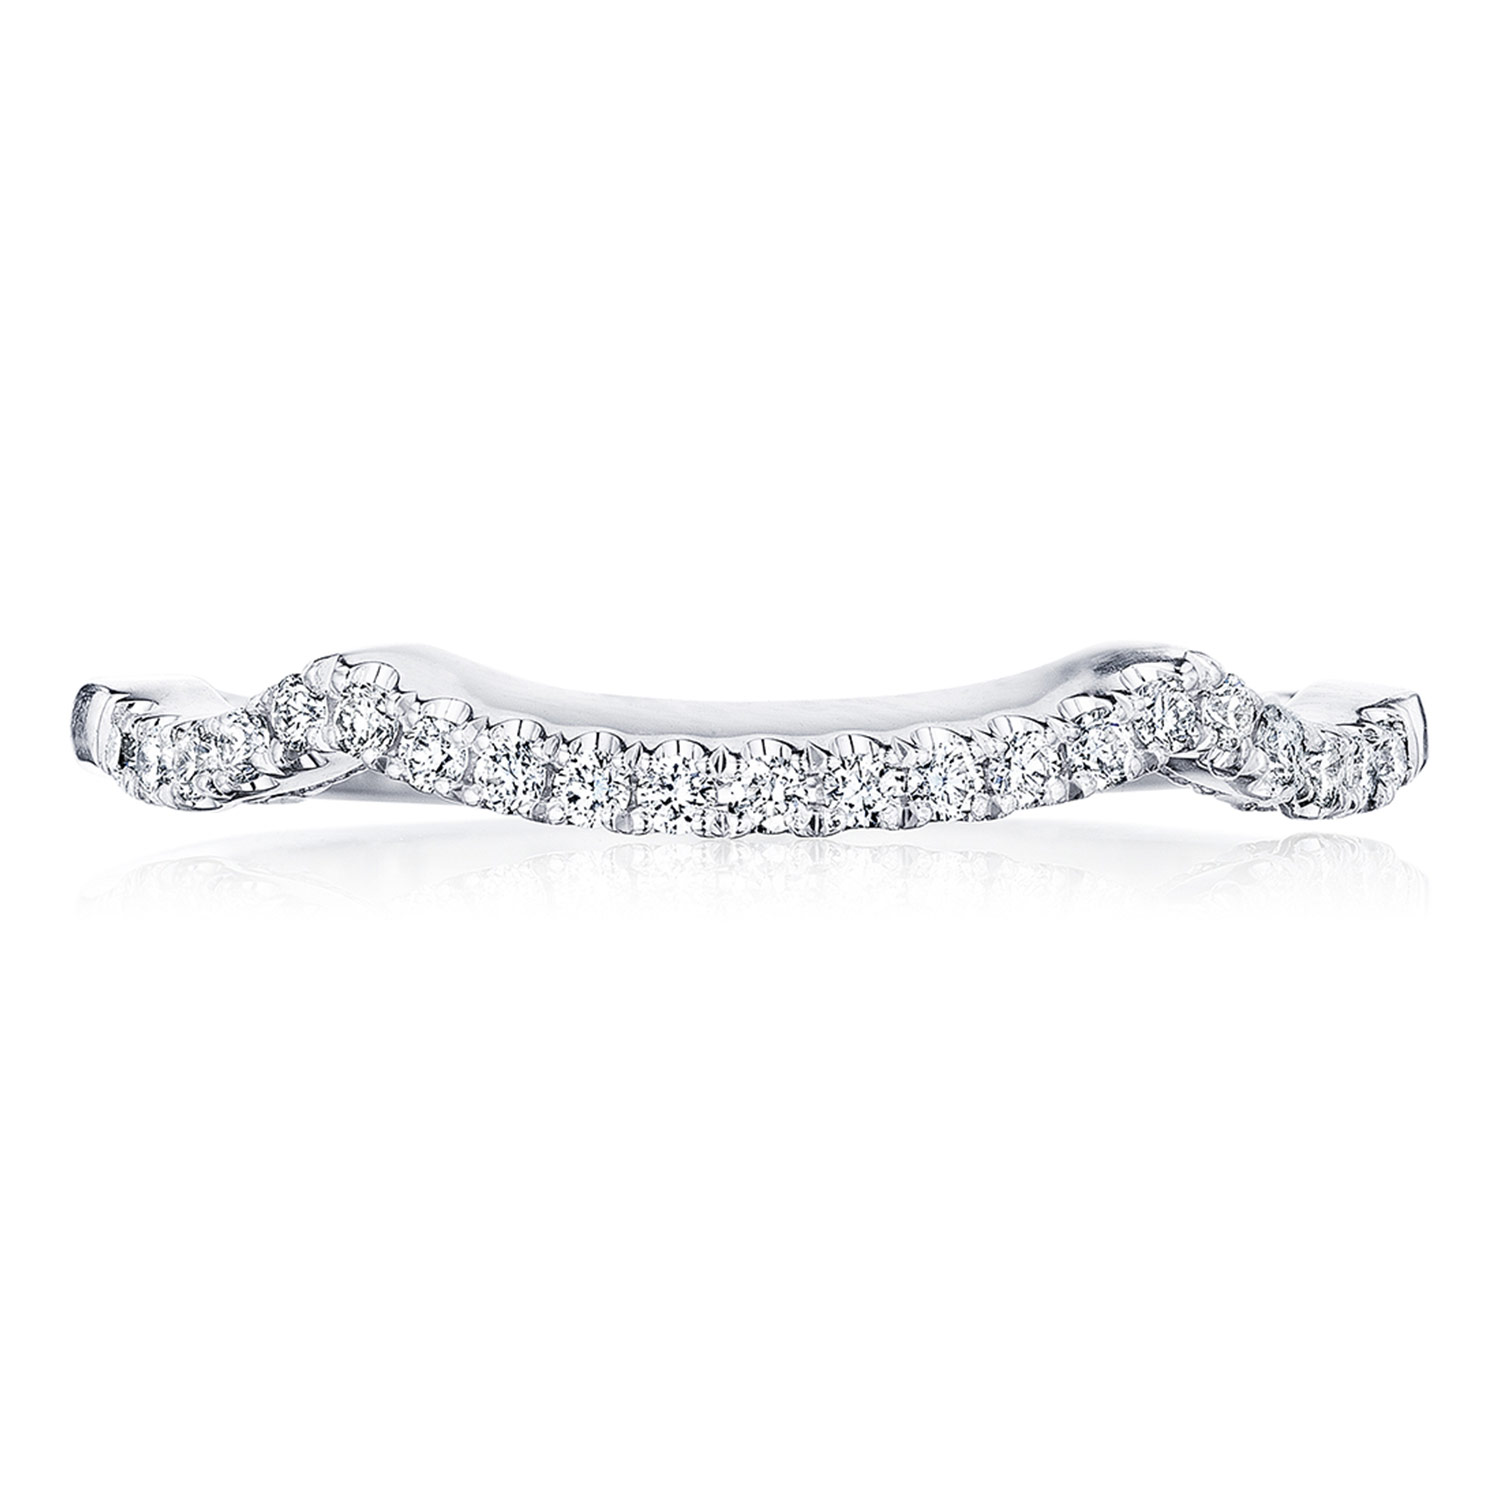 https://www.ackermanjewelers.com/upload/product/P105B.jpg